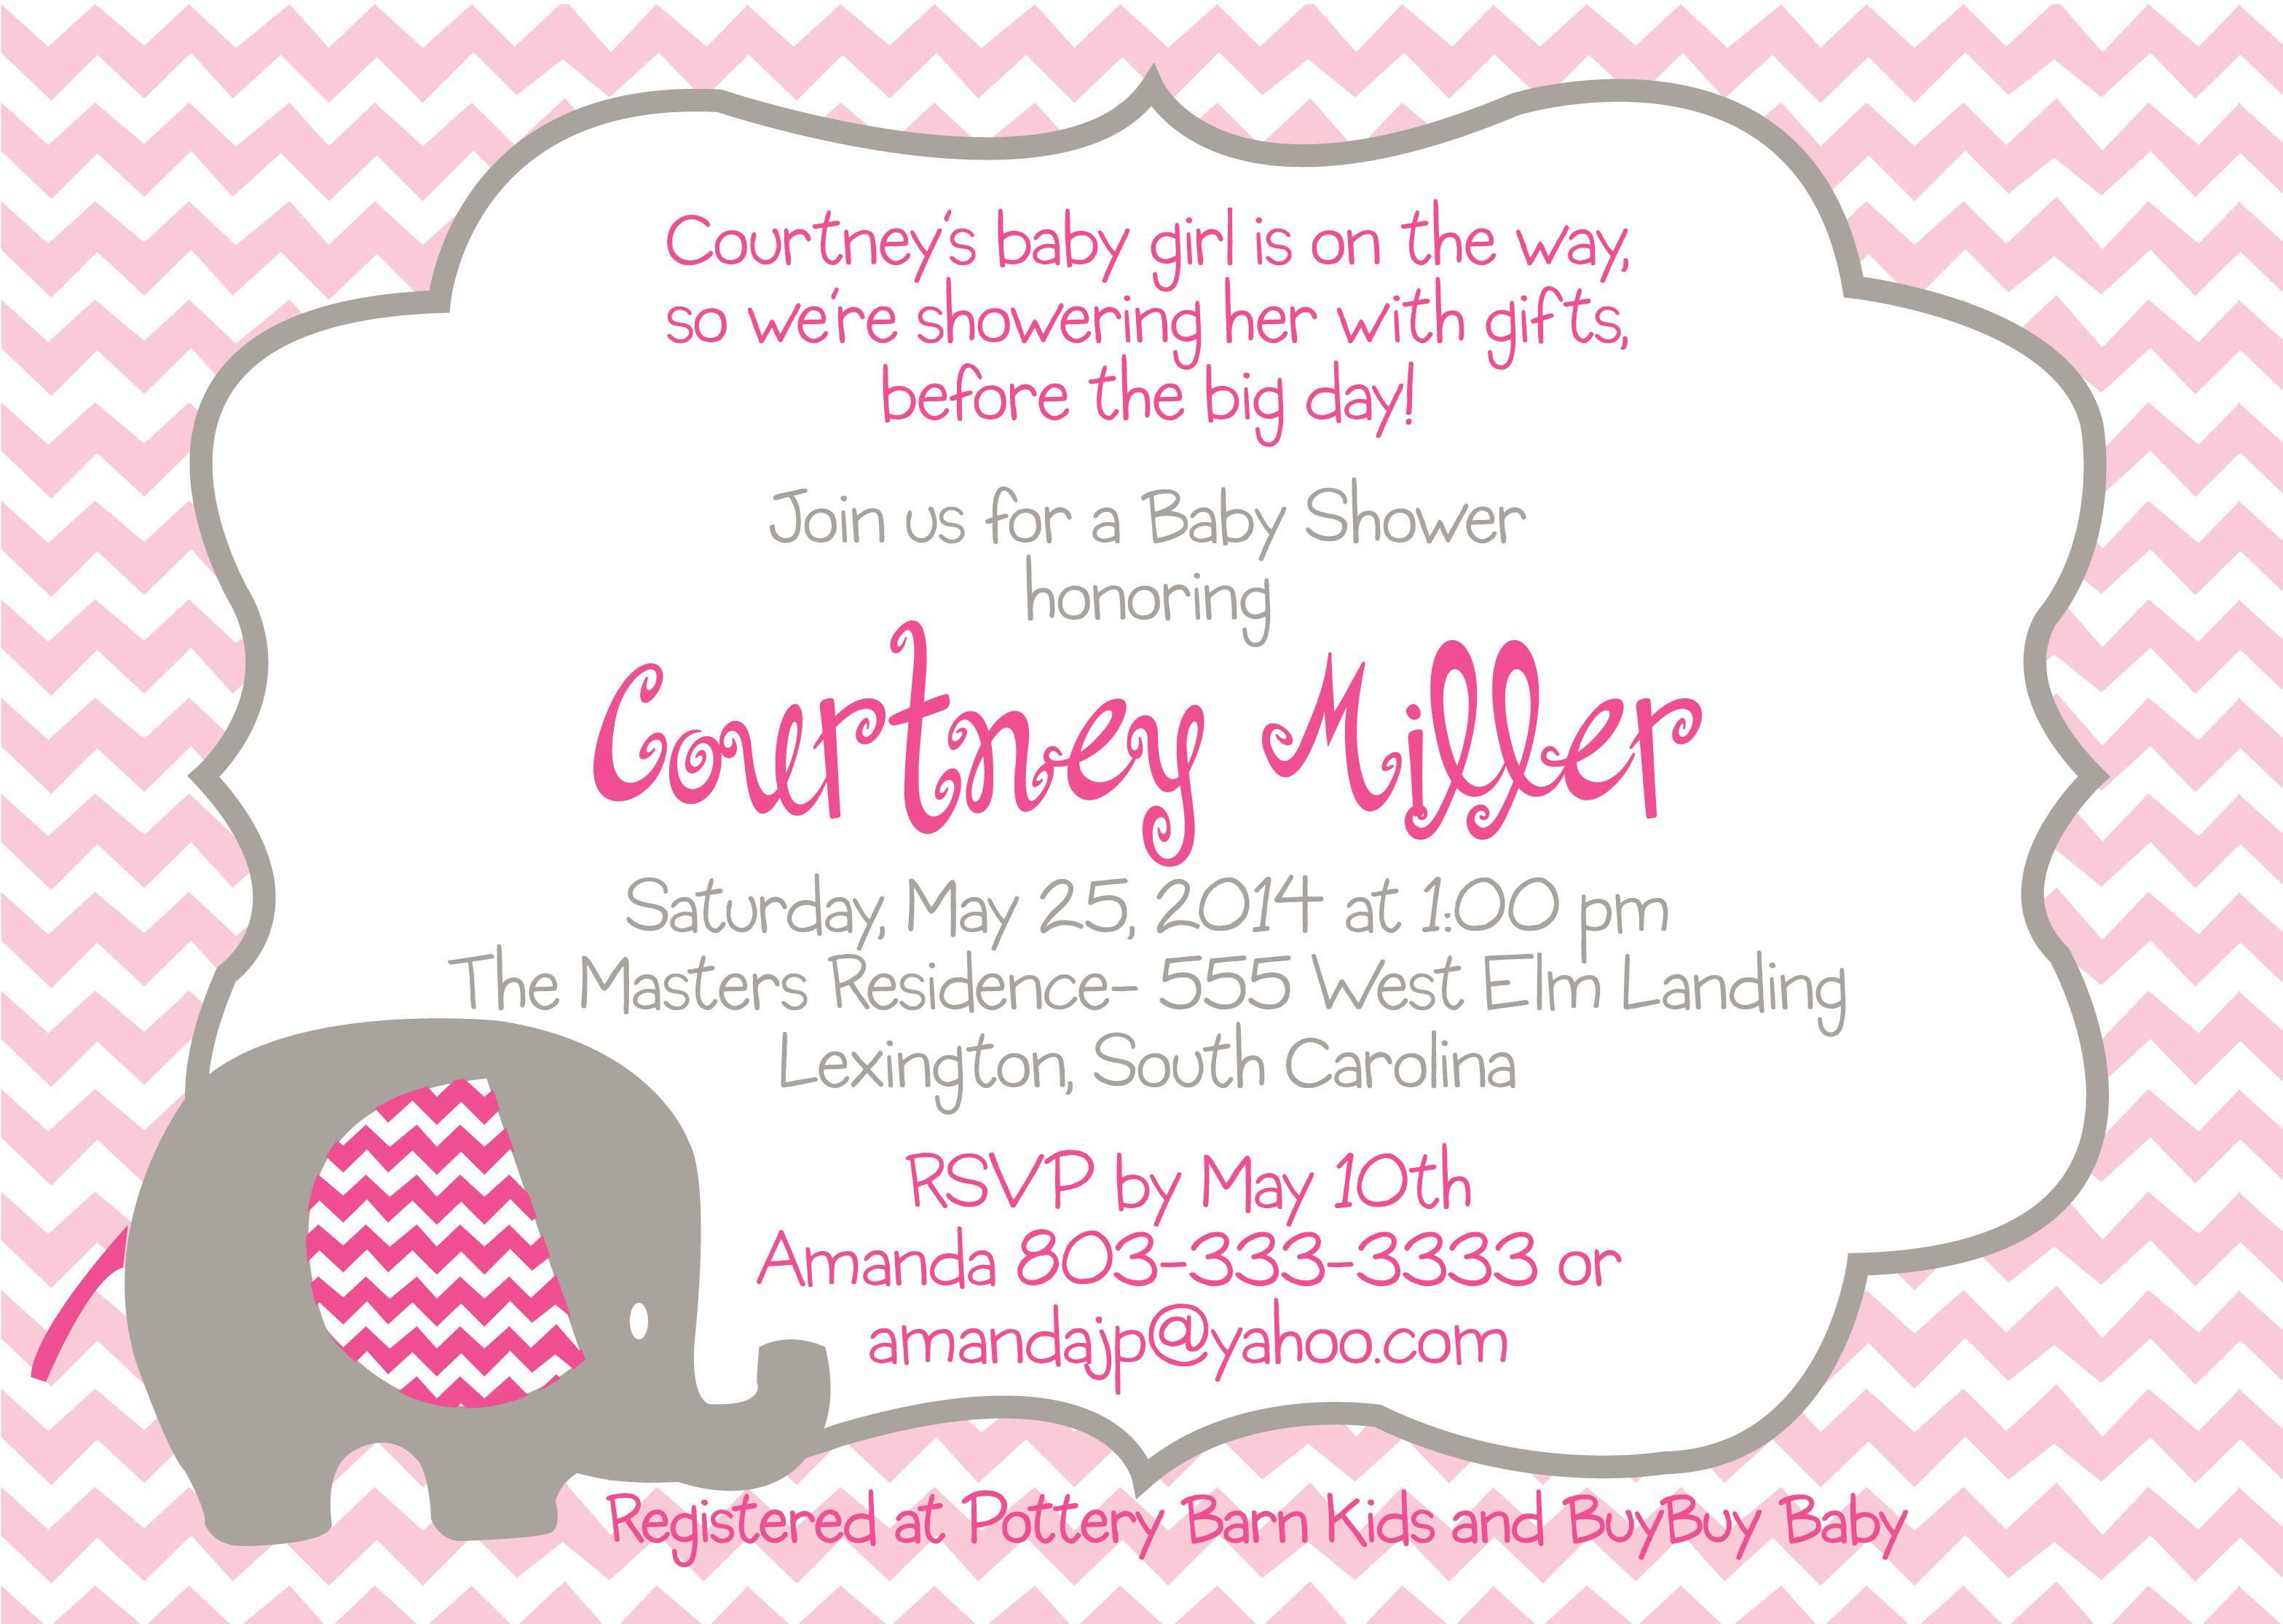 Full Size of Baby Shower:delightful Baby Shower Invitation Wording Picture Designs Baby Shower Invitation Wording Baby Invitations Templates New Wording For Baby Shower Invitation Wording For Baby Shower